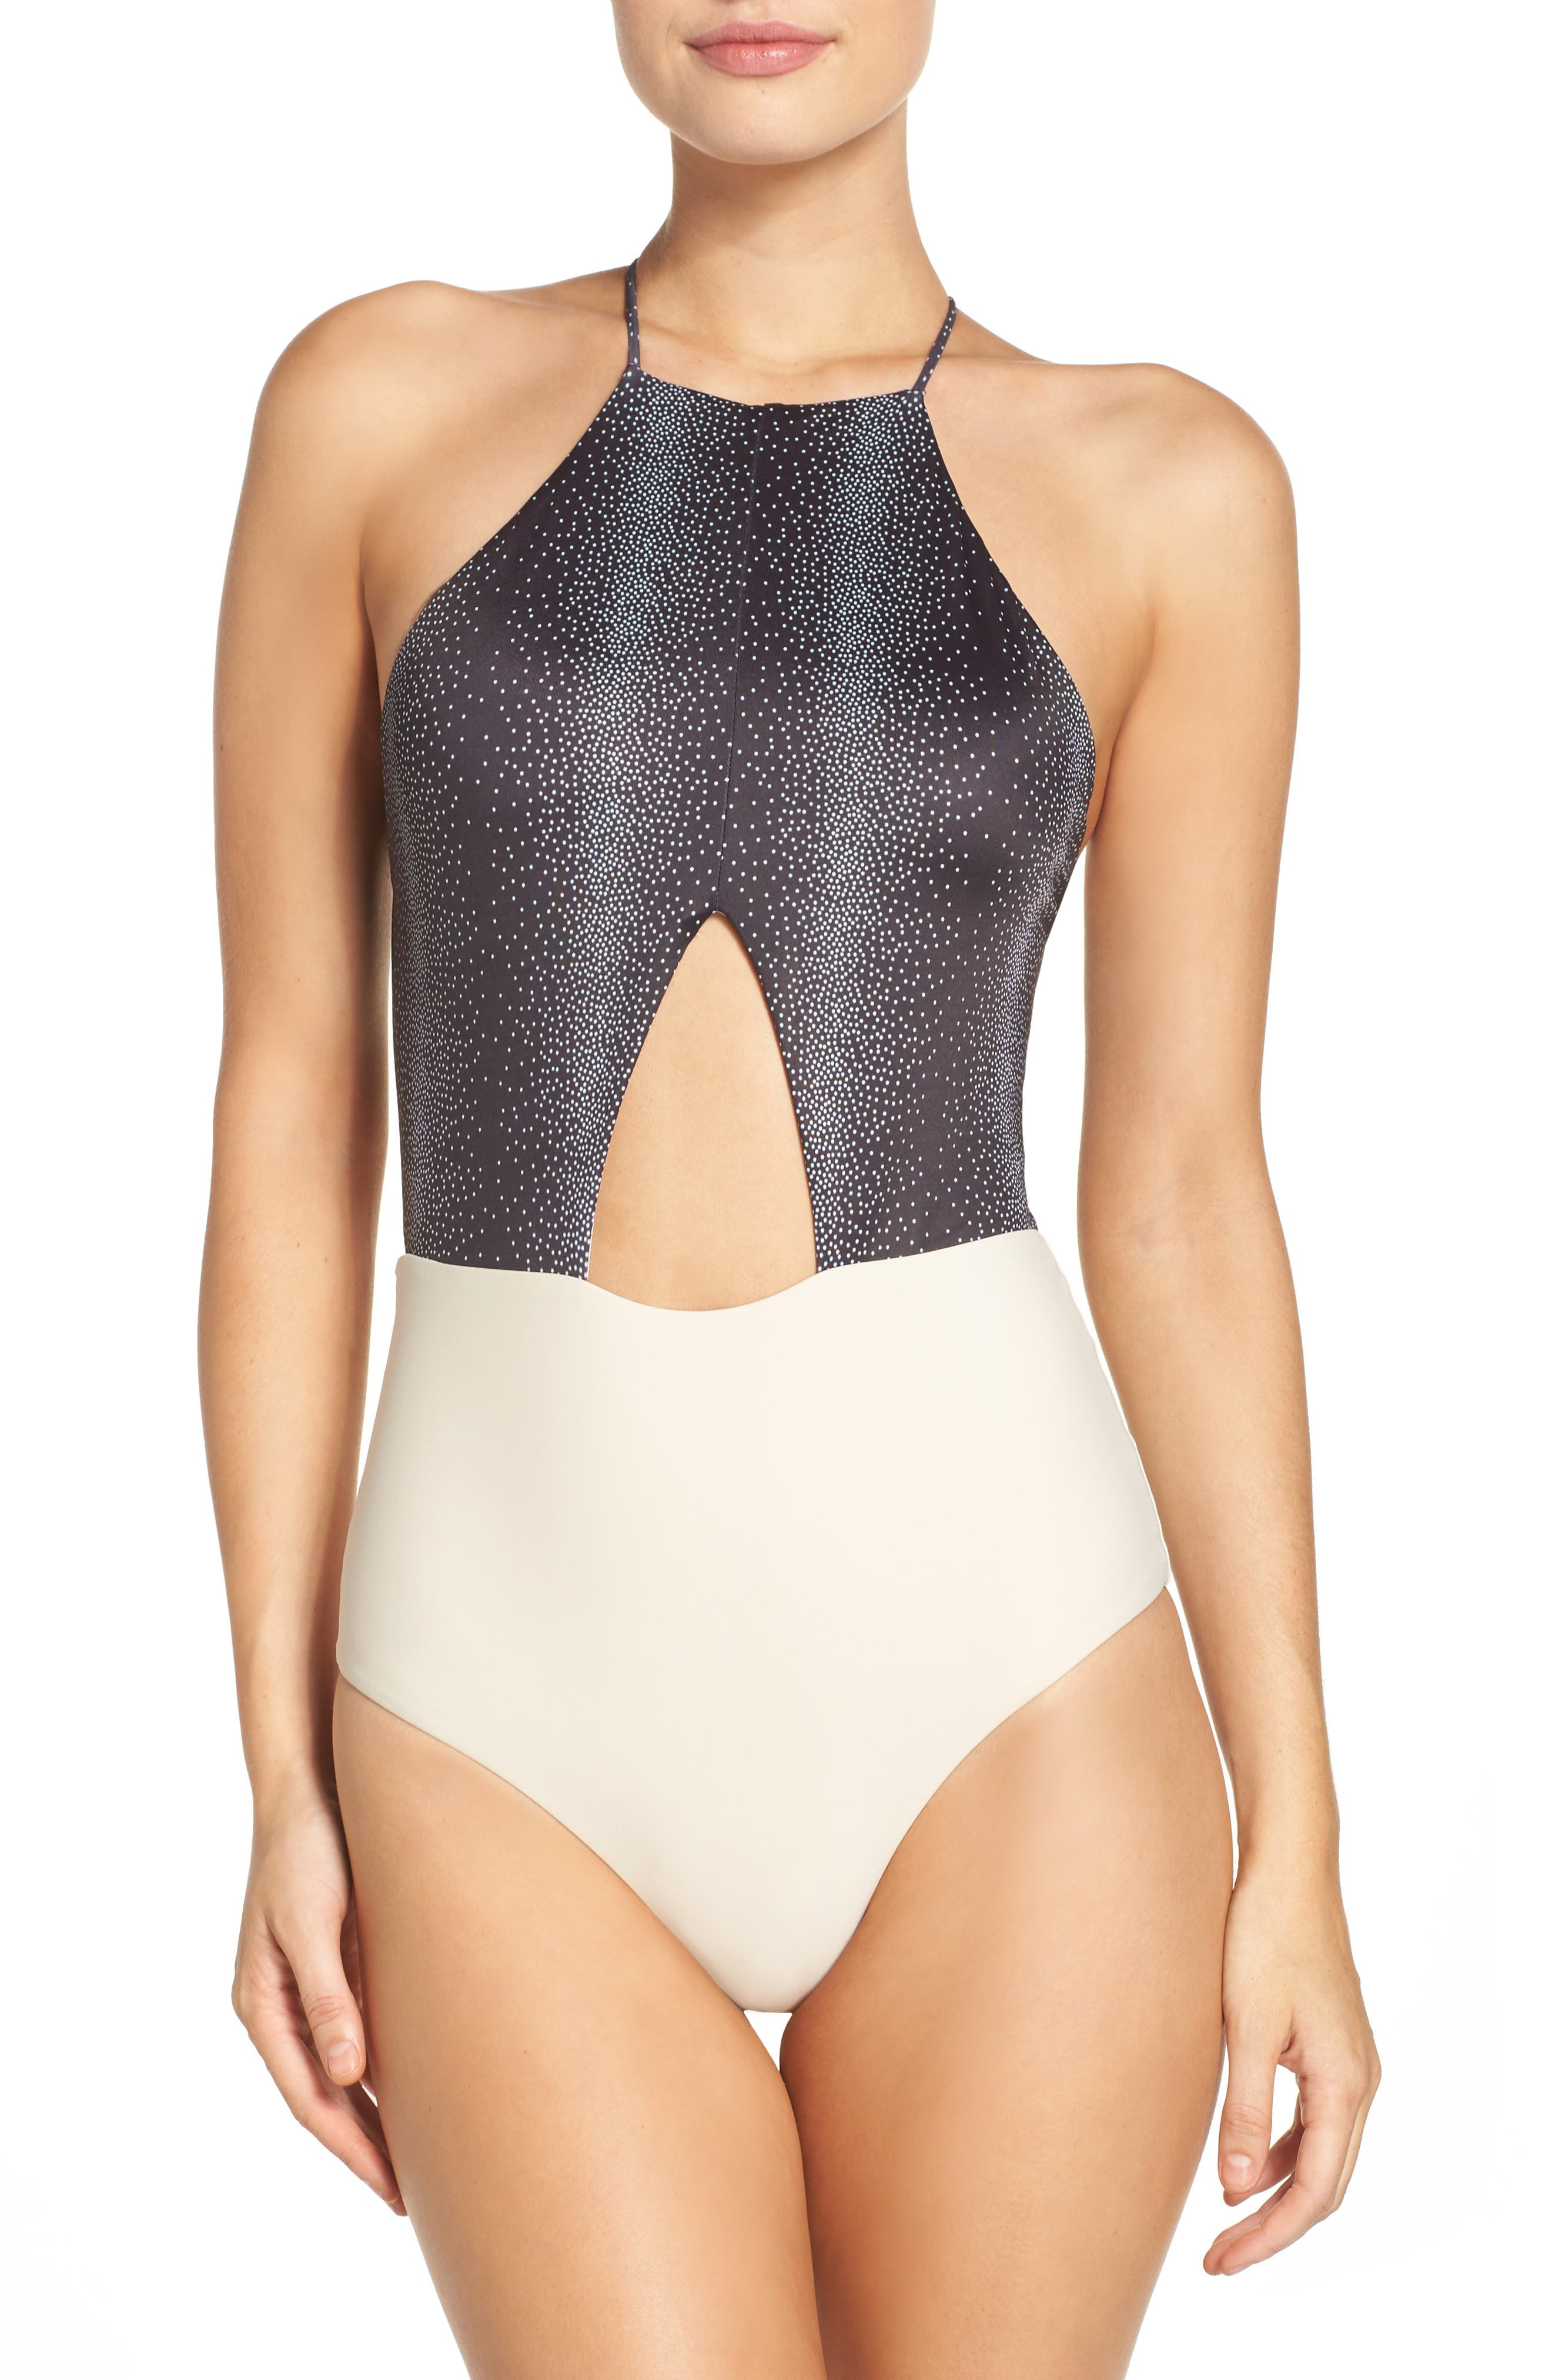 Lela One-Piece Swimsuit,                             Main thumbnail 1, color,                             BLACK PERCY DOT